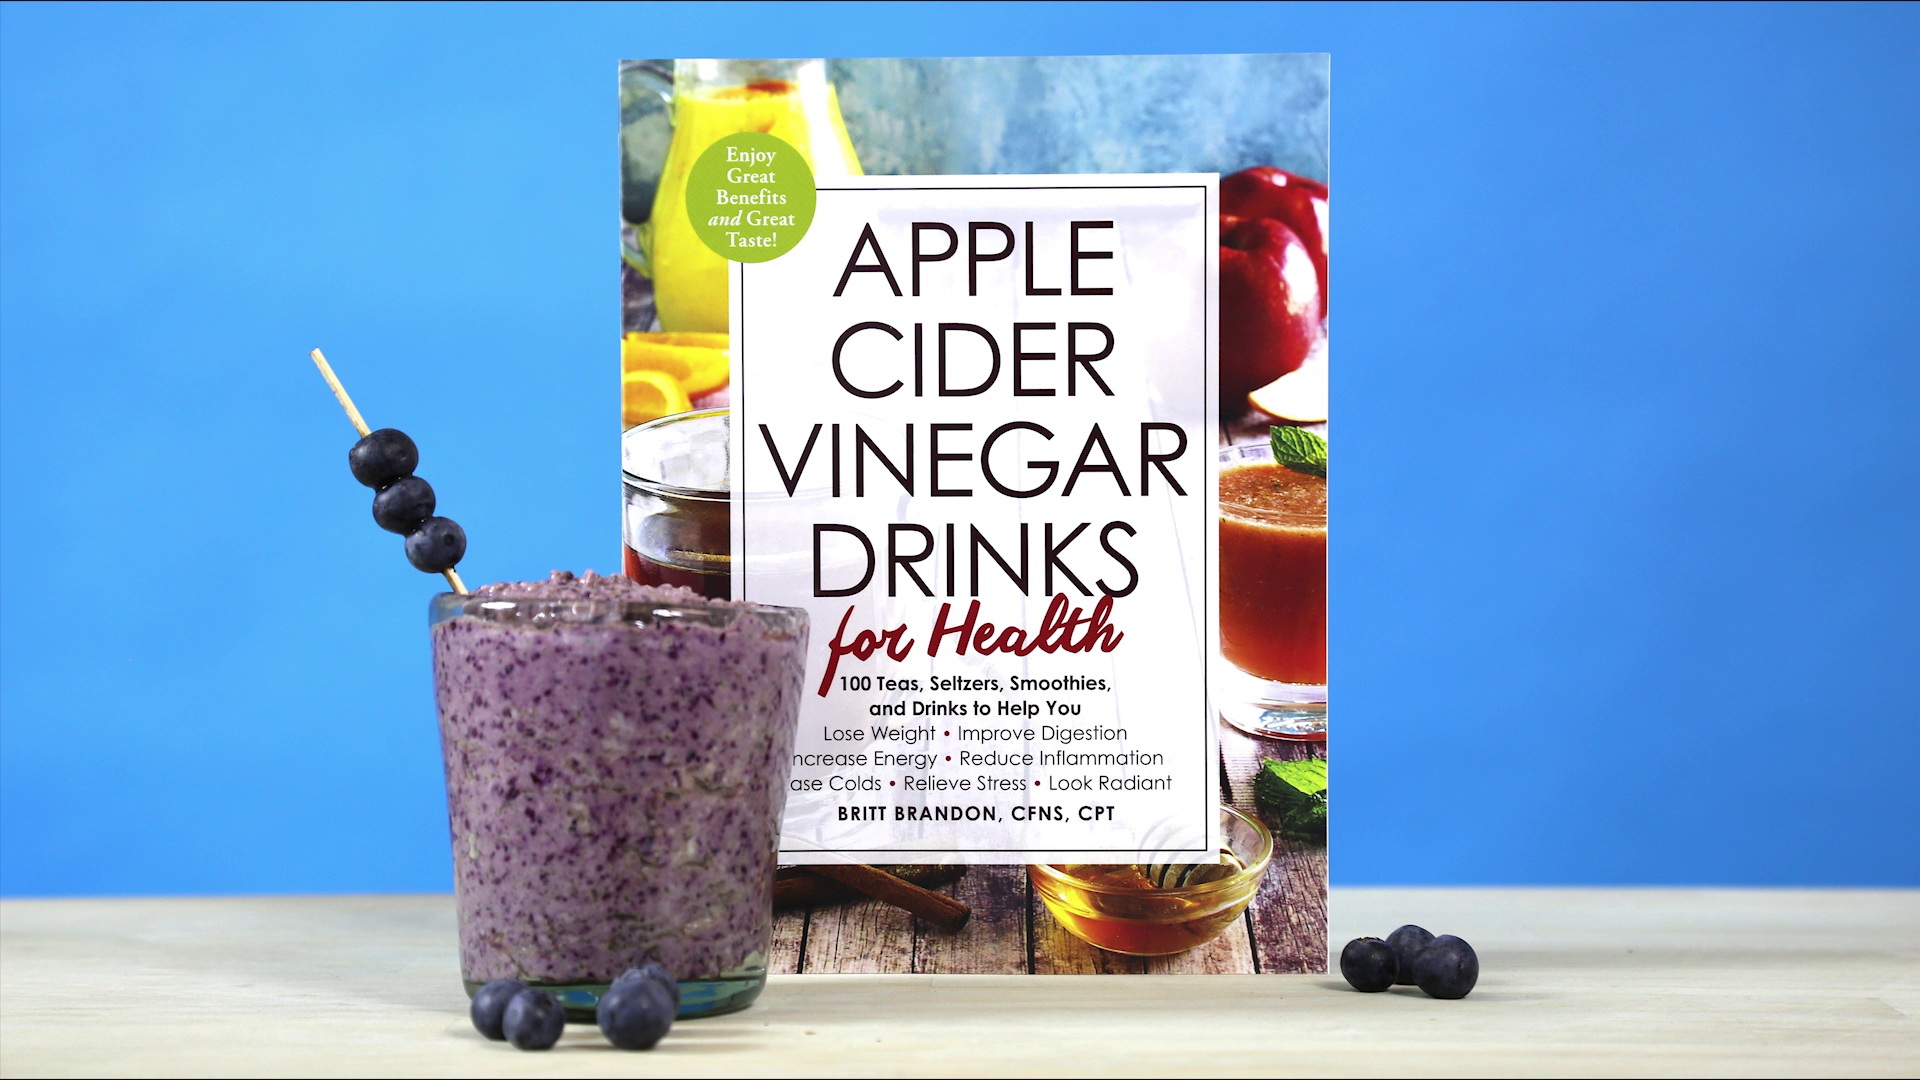 Make Your Own Blueberry Muffin Smoothie With Apple Cider Vinegar!